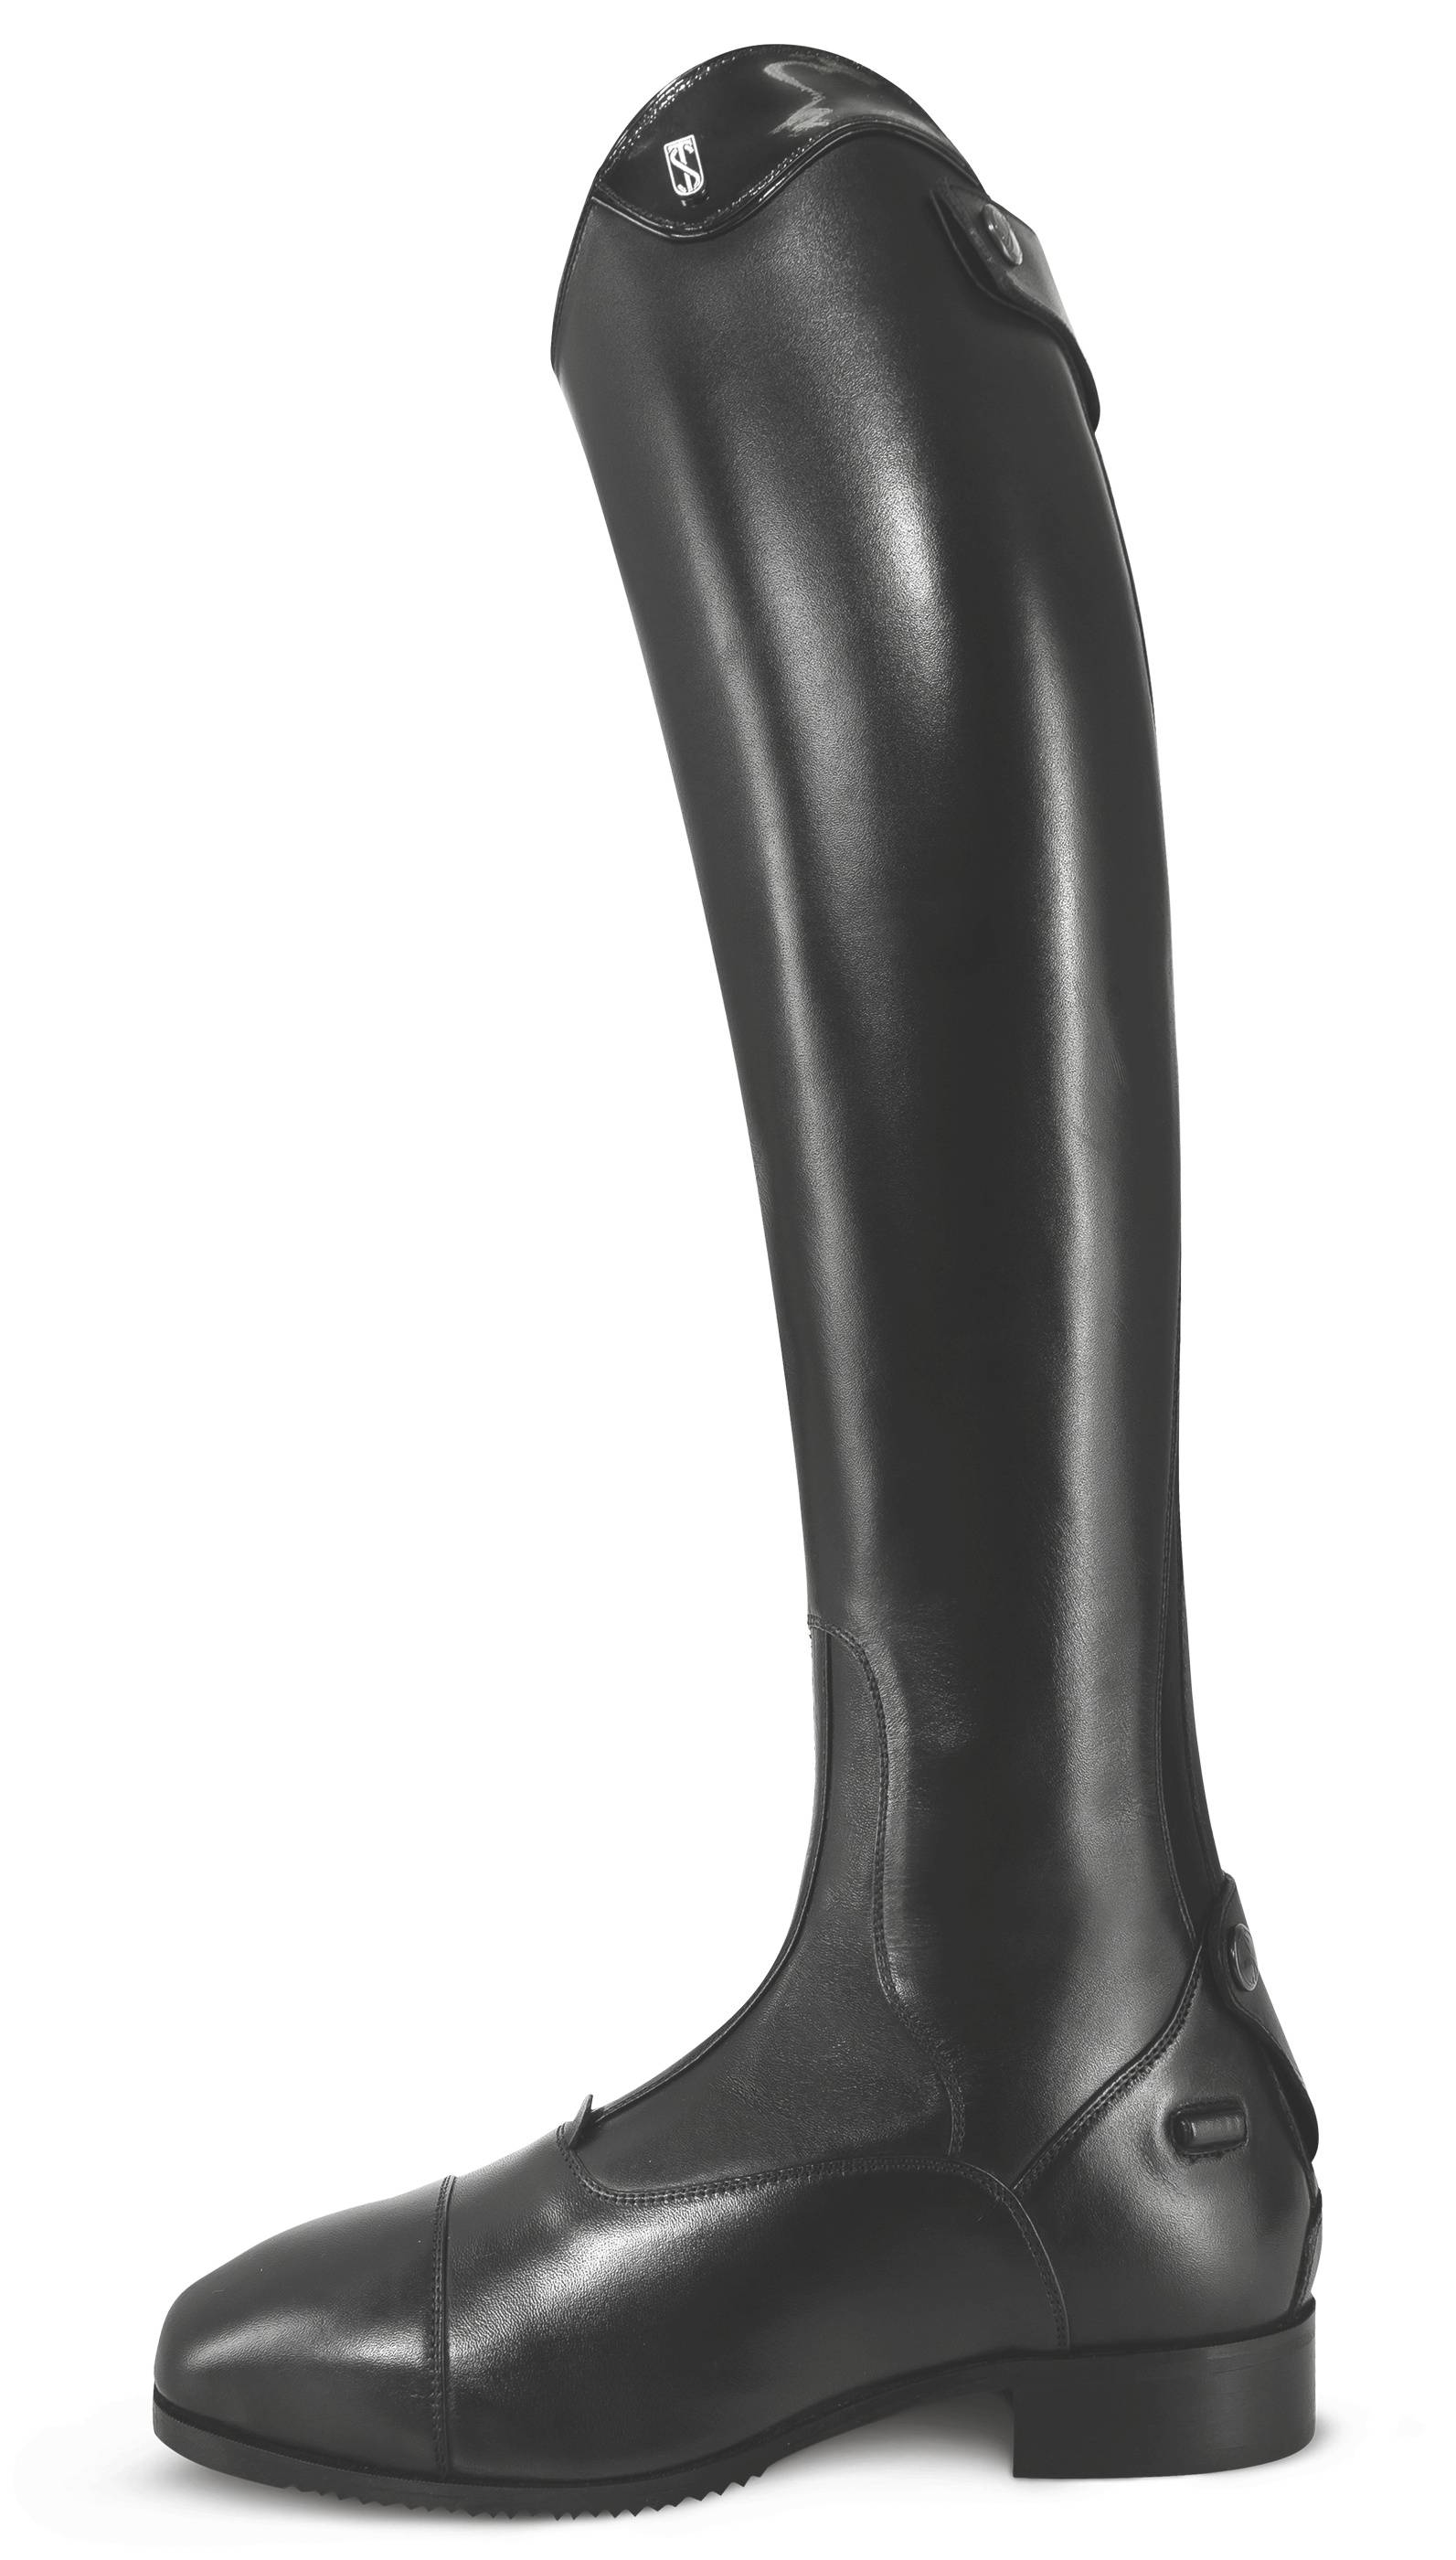 Tredstep Medici Dress Boots